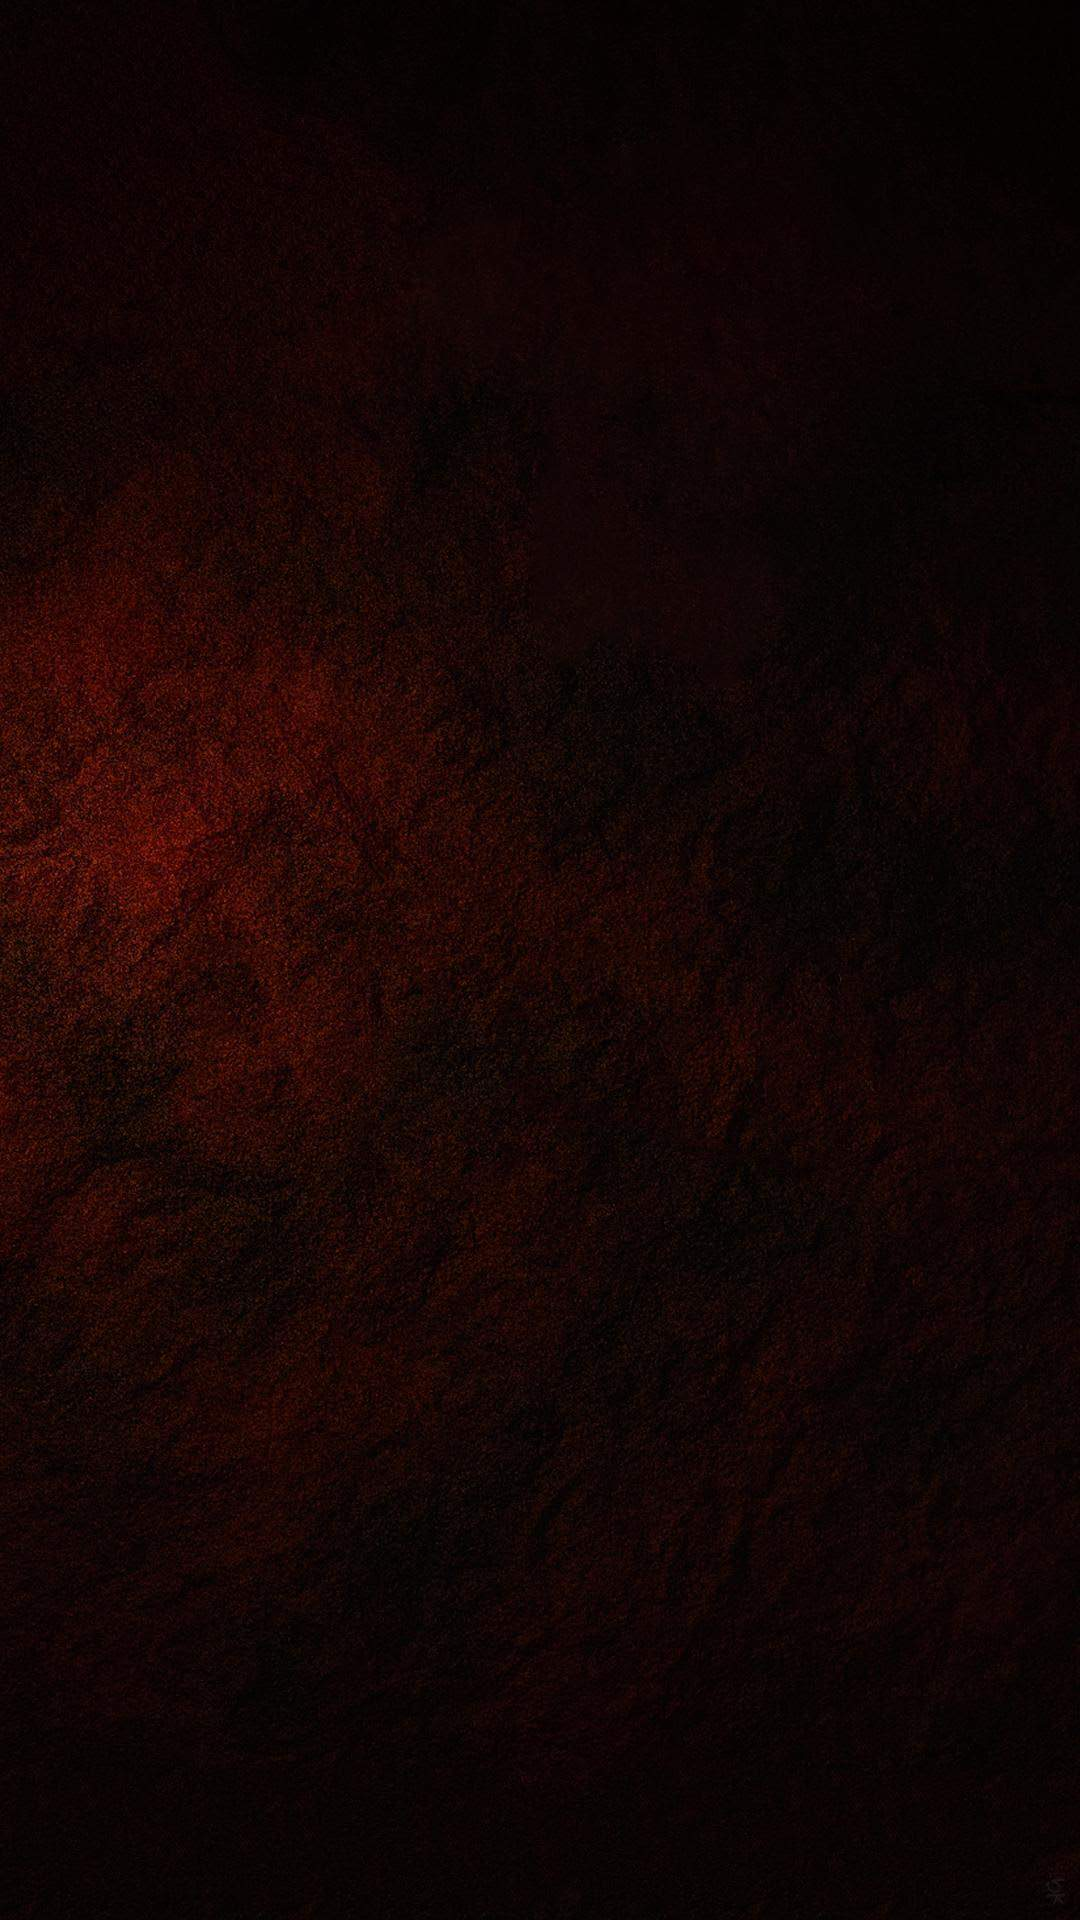 Iphone 8 Plus Wallpapers Wallpaper Cave